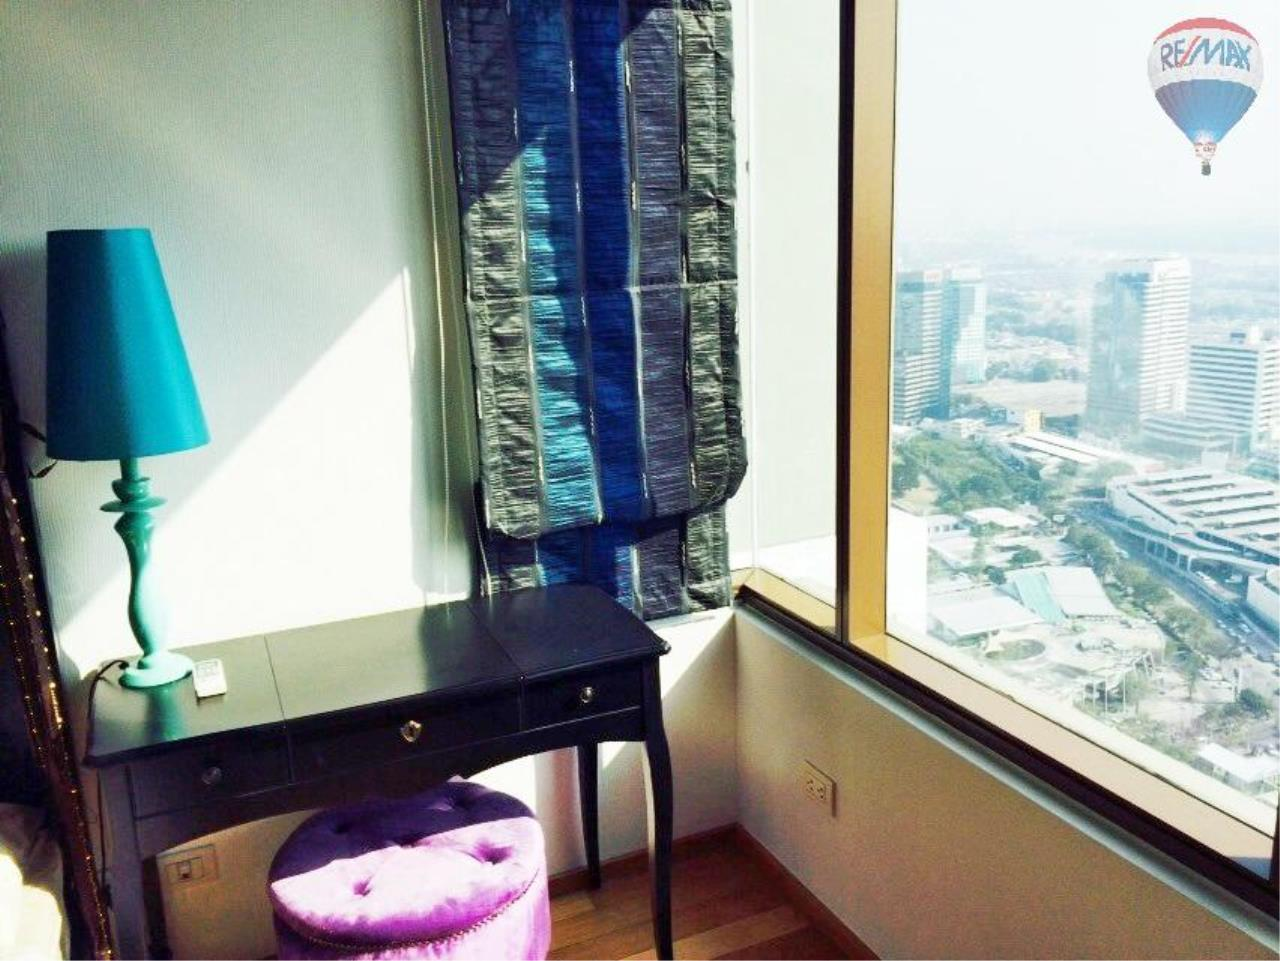 RE/MAX Properties Agency's Condominium for sale 1 bedroom 65 Sq.m. at Emporio Place 8